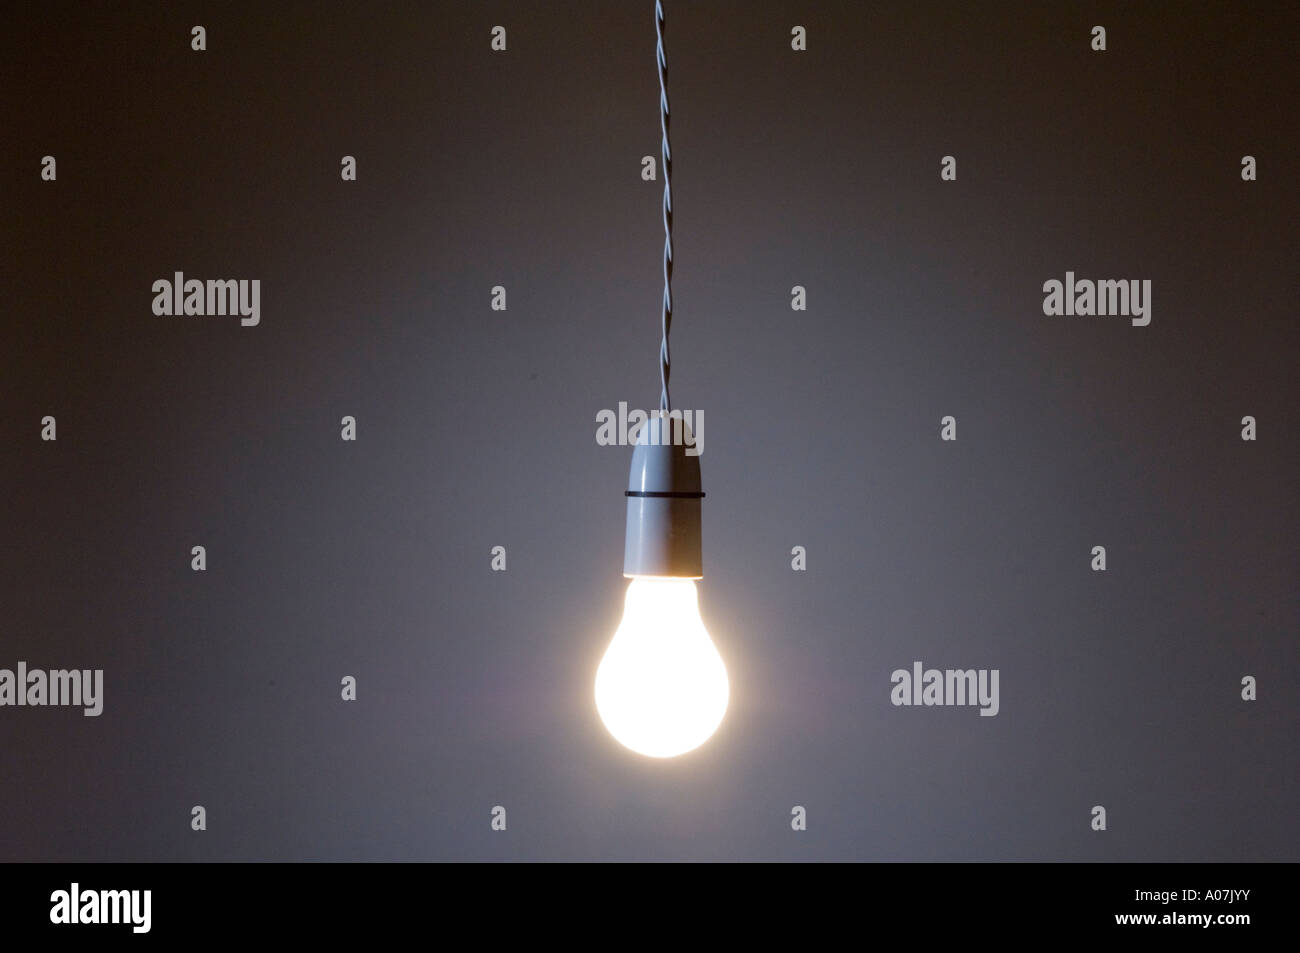 An incandescent lightbulb hanging by a twisted flex wire - Stock Image